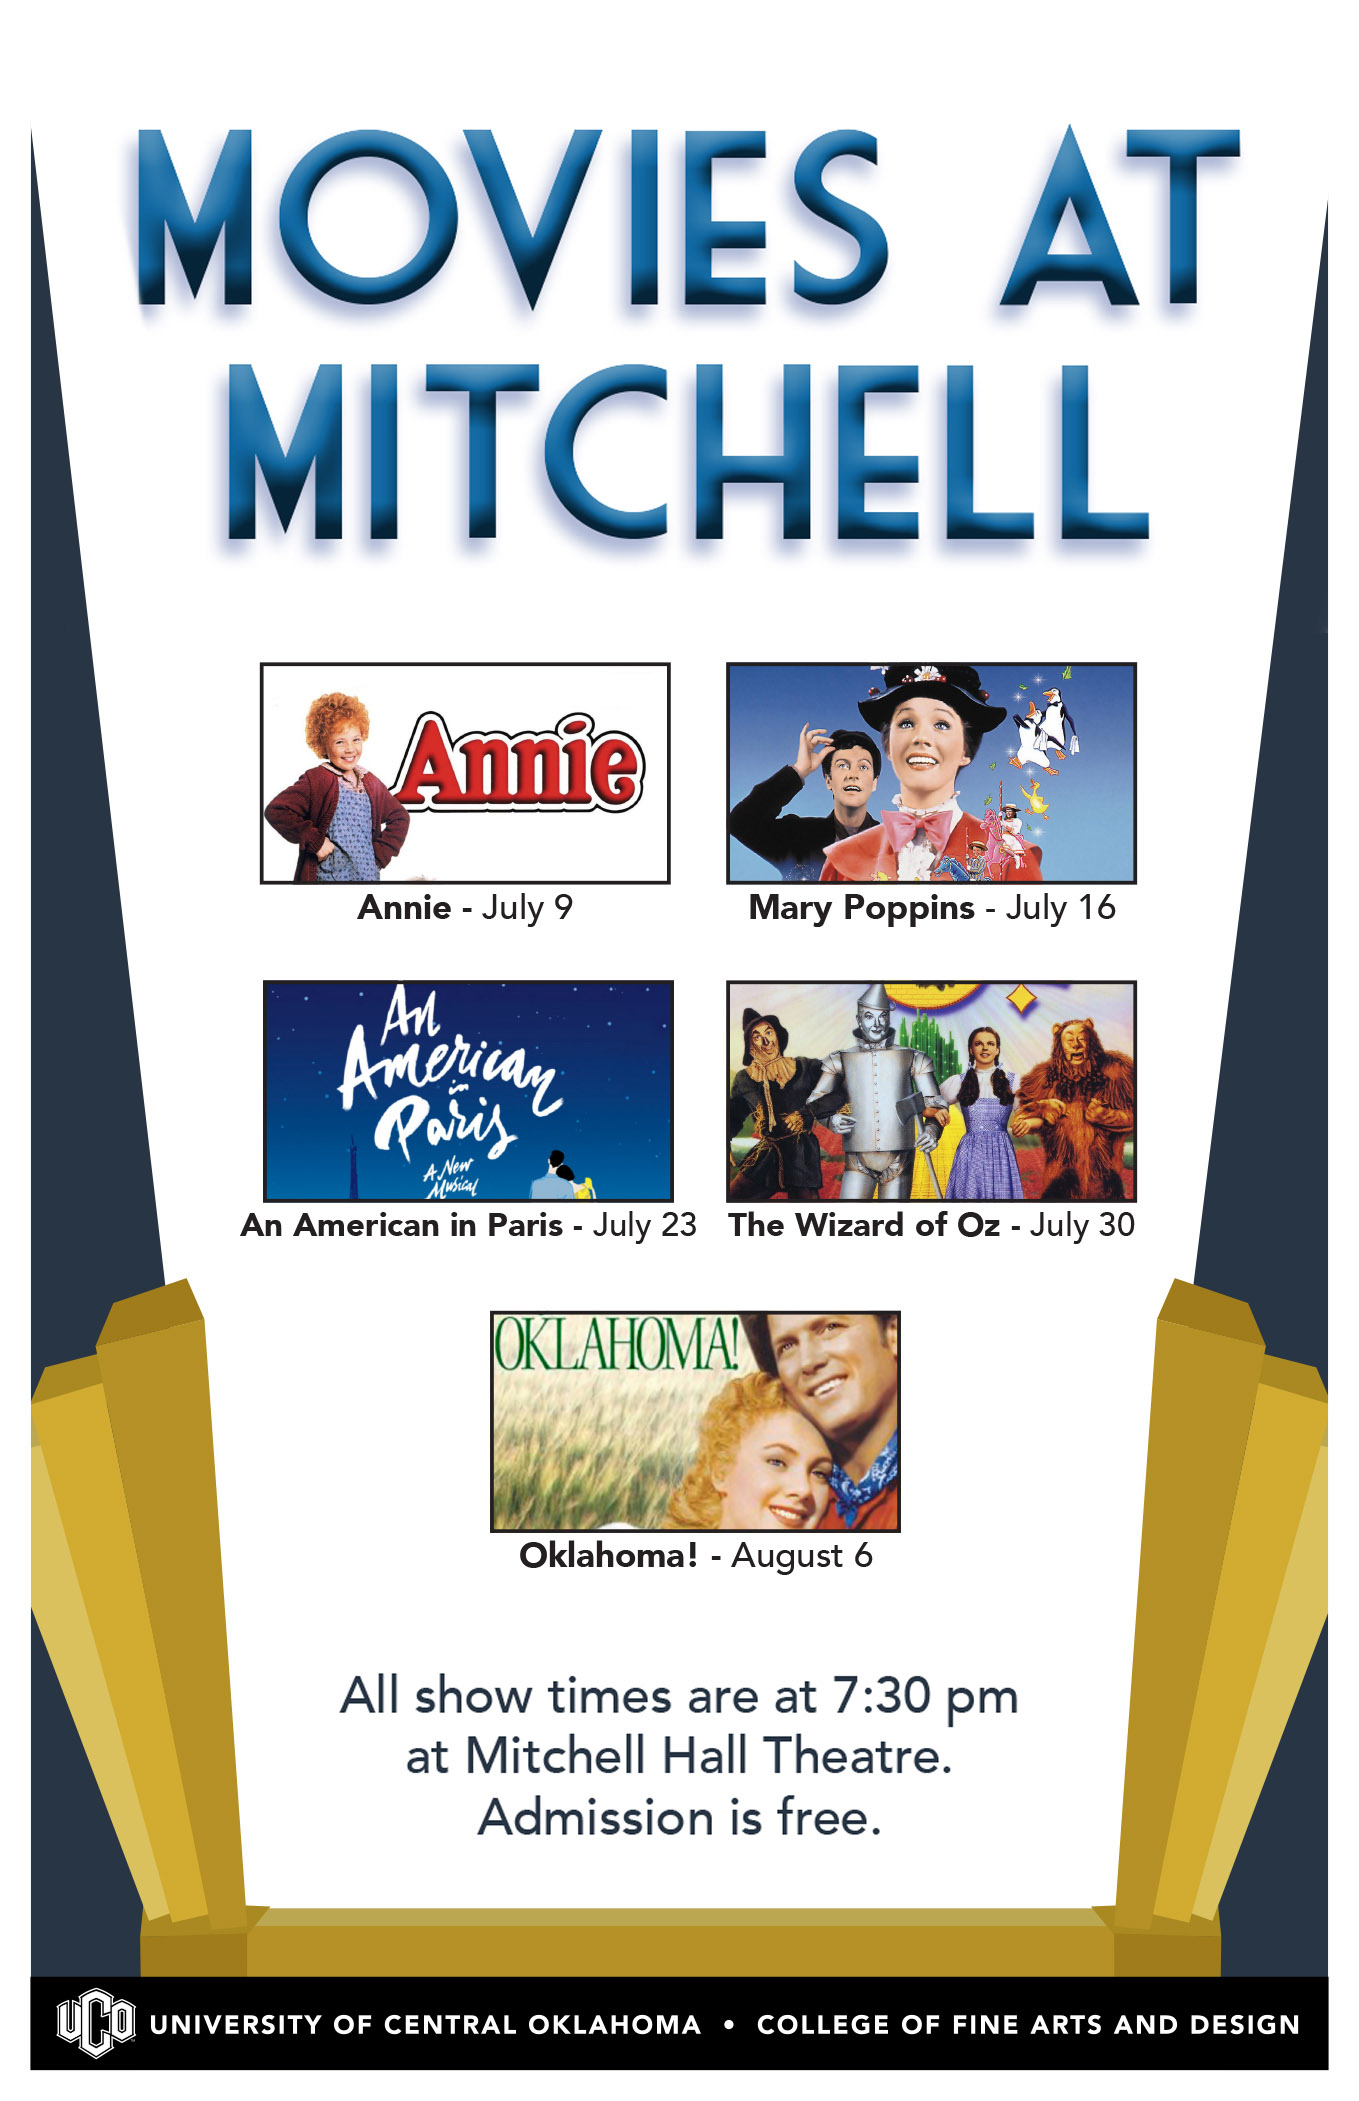 UCO Press Release: UCO's 'Movies@Mitchell' Offers Free